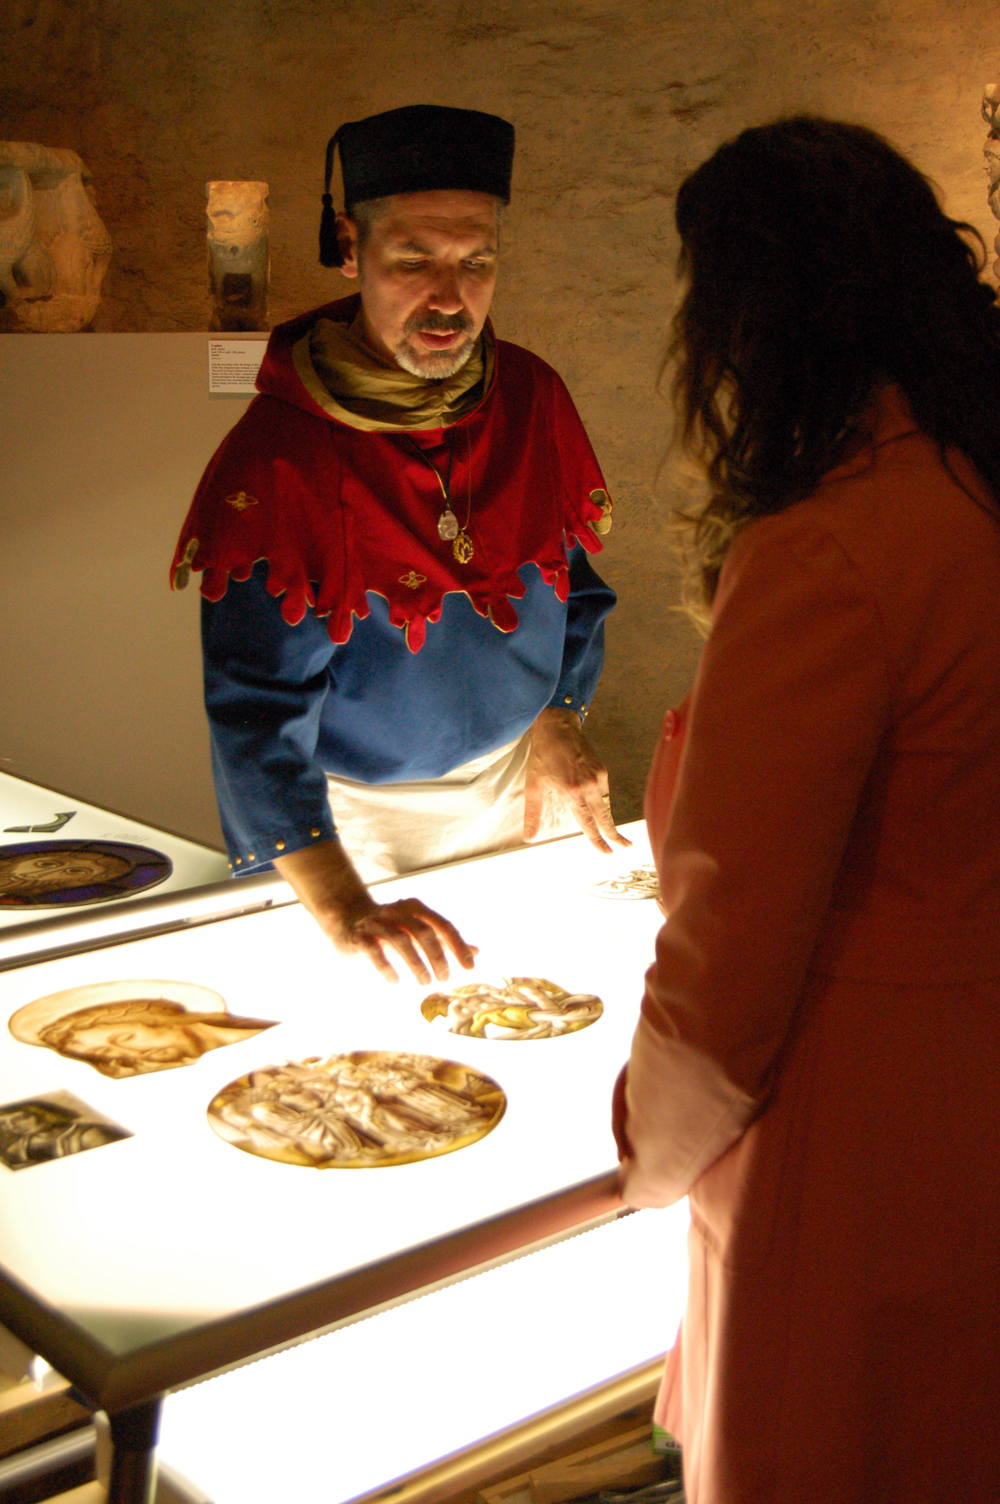 Stained glass artist J. Kenneth Leap talks with a visitor about the art of medieval stained glass painting and window making.